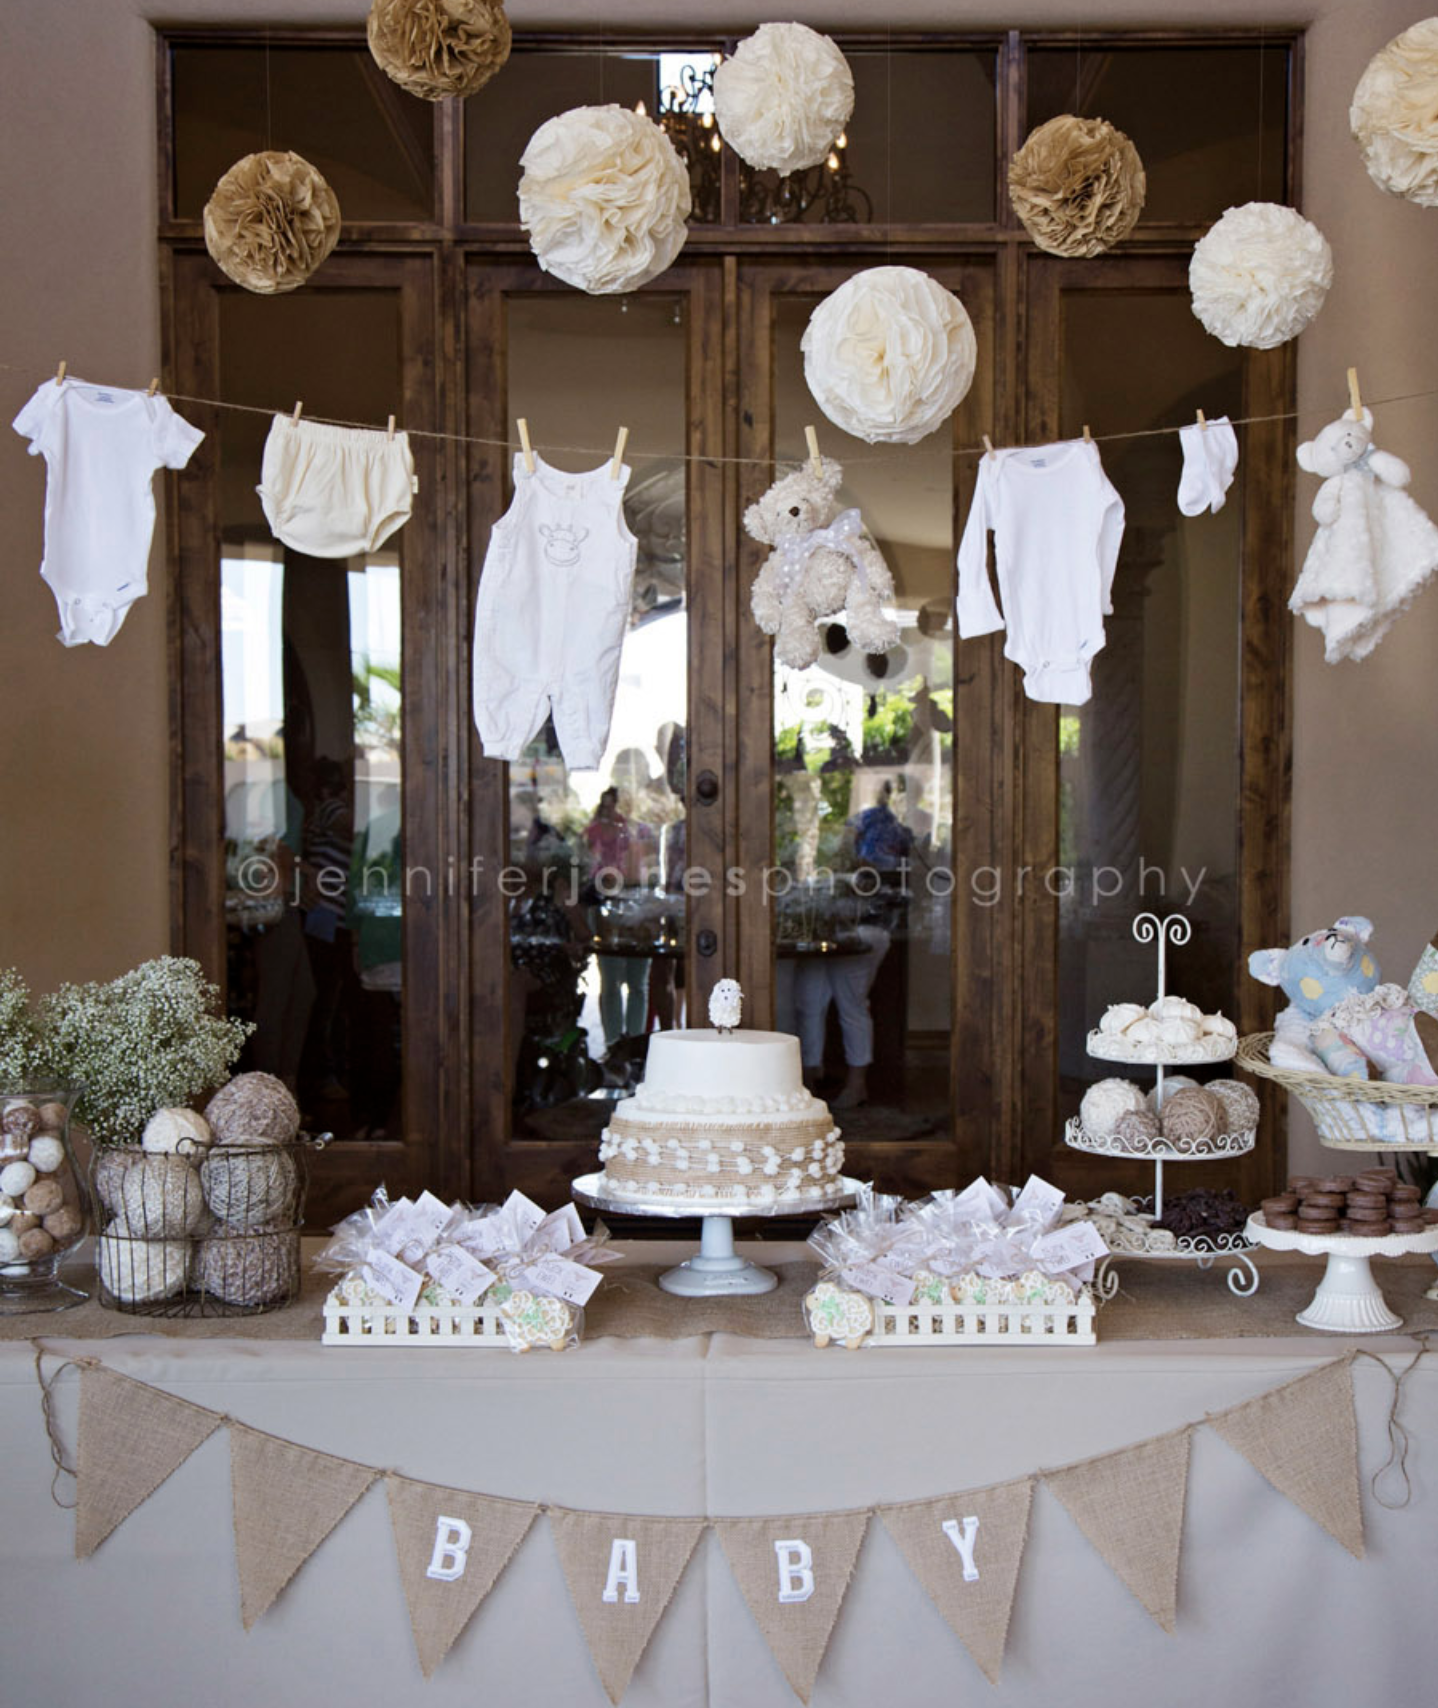 Baby shower planning is the best! Mamma-to-be & I are so obsessed with these neutral tones for her sweet baby boy.